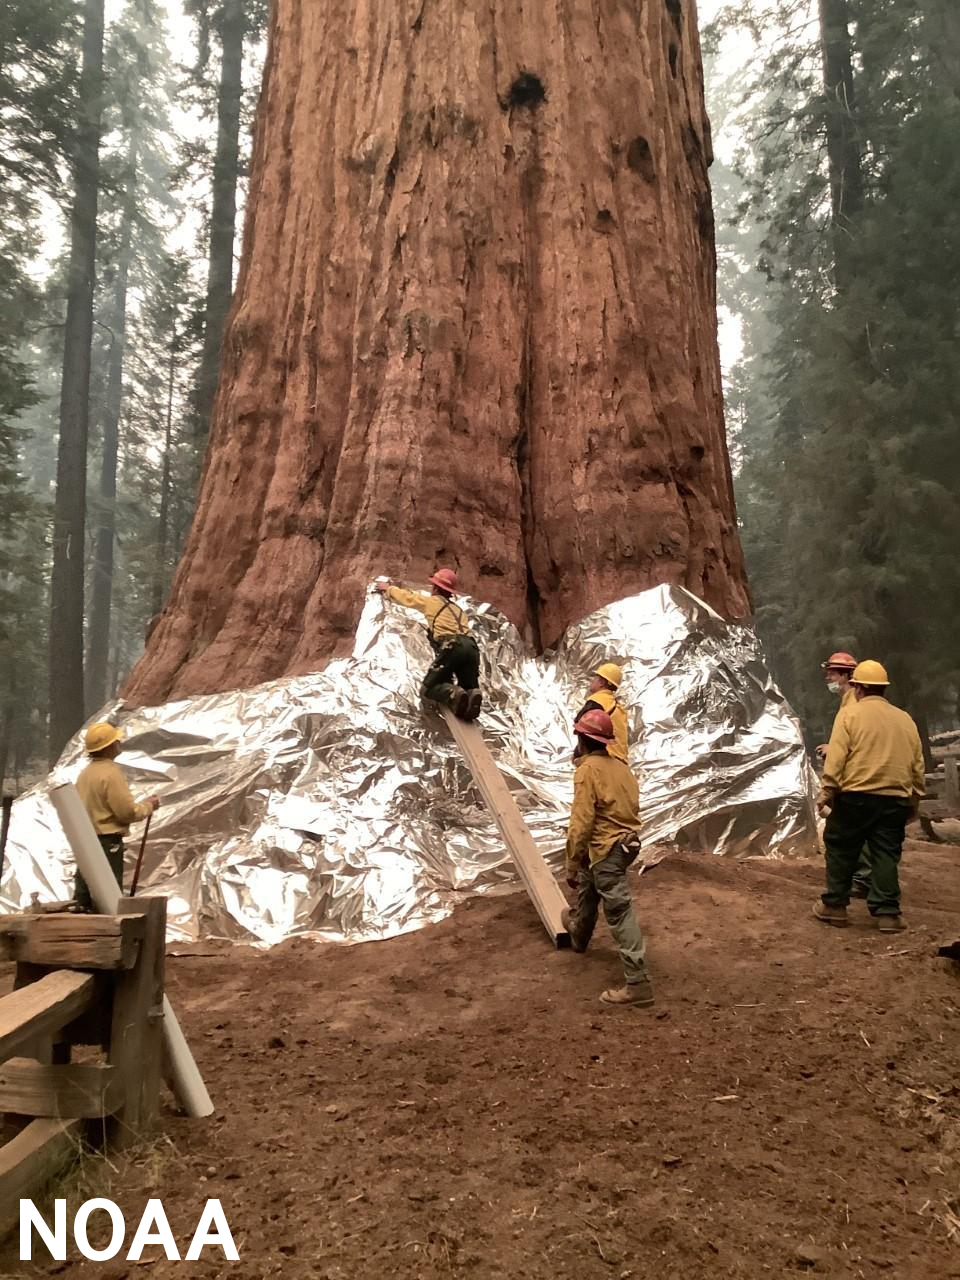 Wildland firefighters apply structure wrap to the base of a giant sequoia tree to protect it from the KNP Complex Wildfire, September 17, 2021.